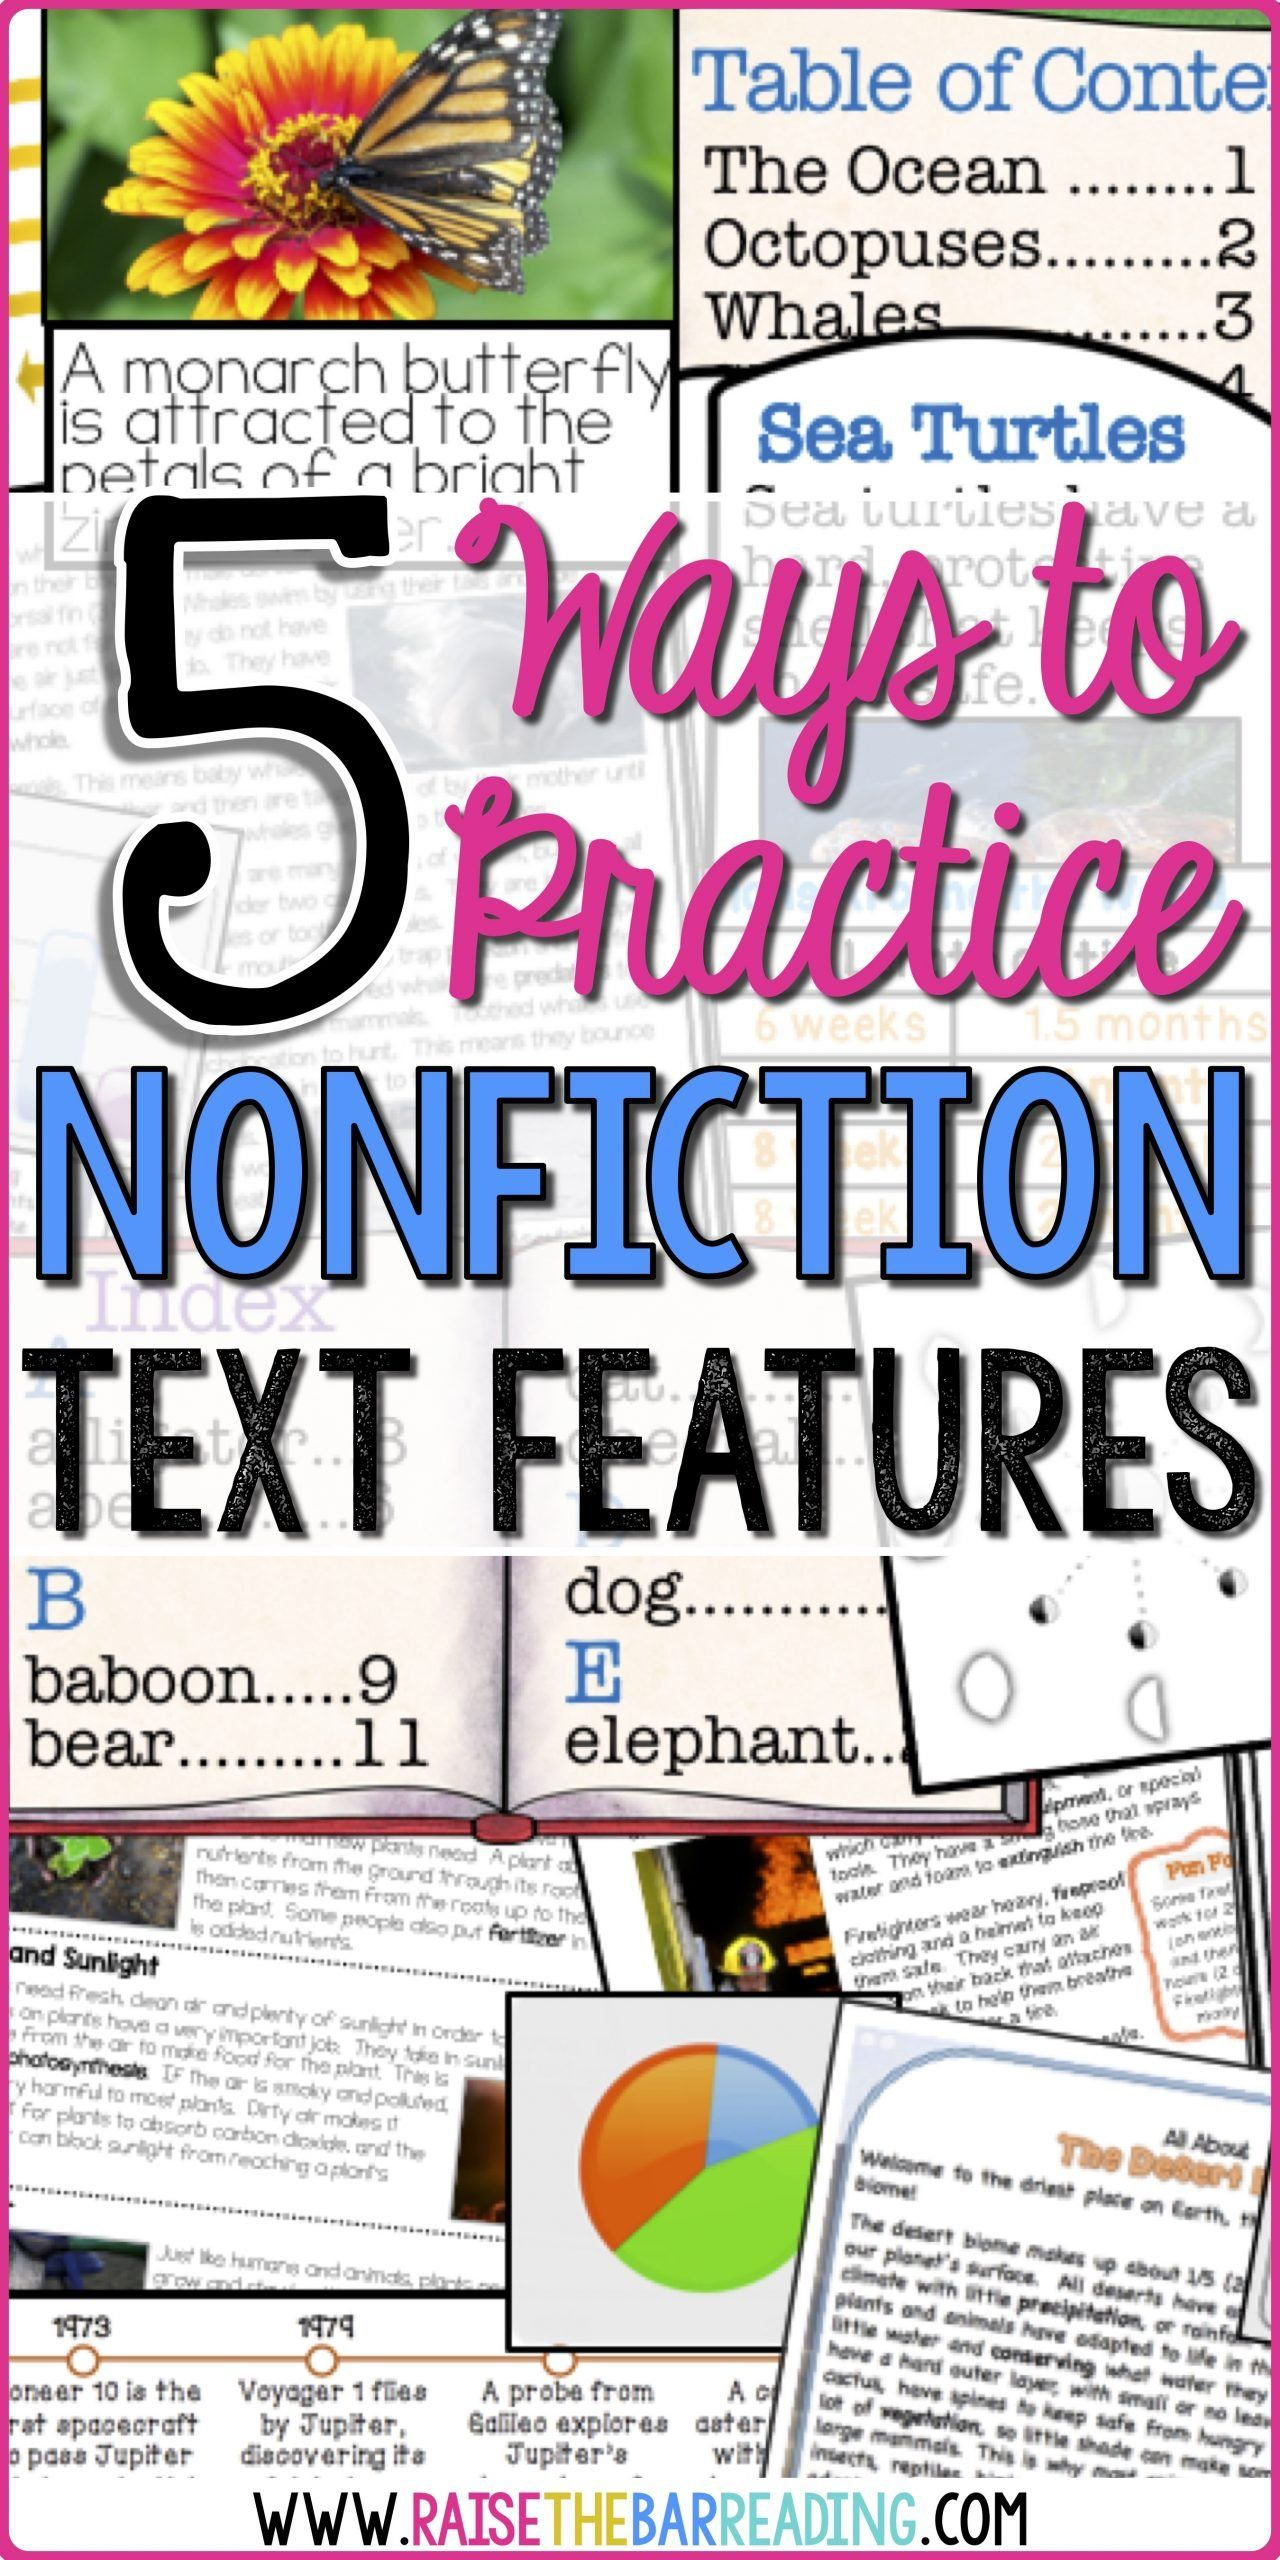 3rd Grade Text Features Worksheet 5 Ways To Practice Nonfiction Text Features Raise The Bar In 2020 Nonfiction Text Features Teaching Nonfiction Nonfiction Texts